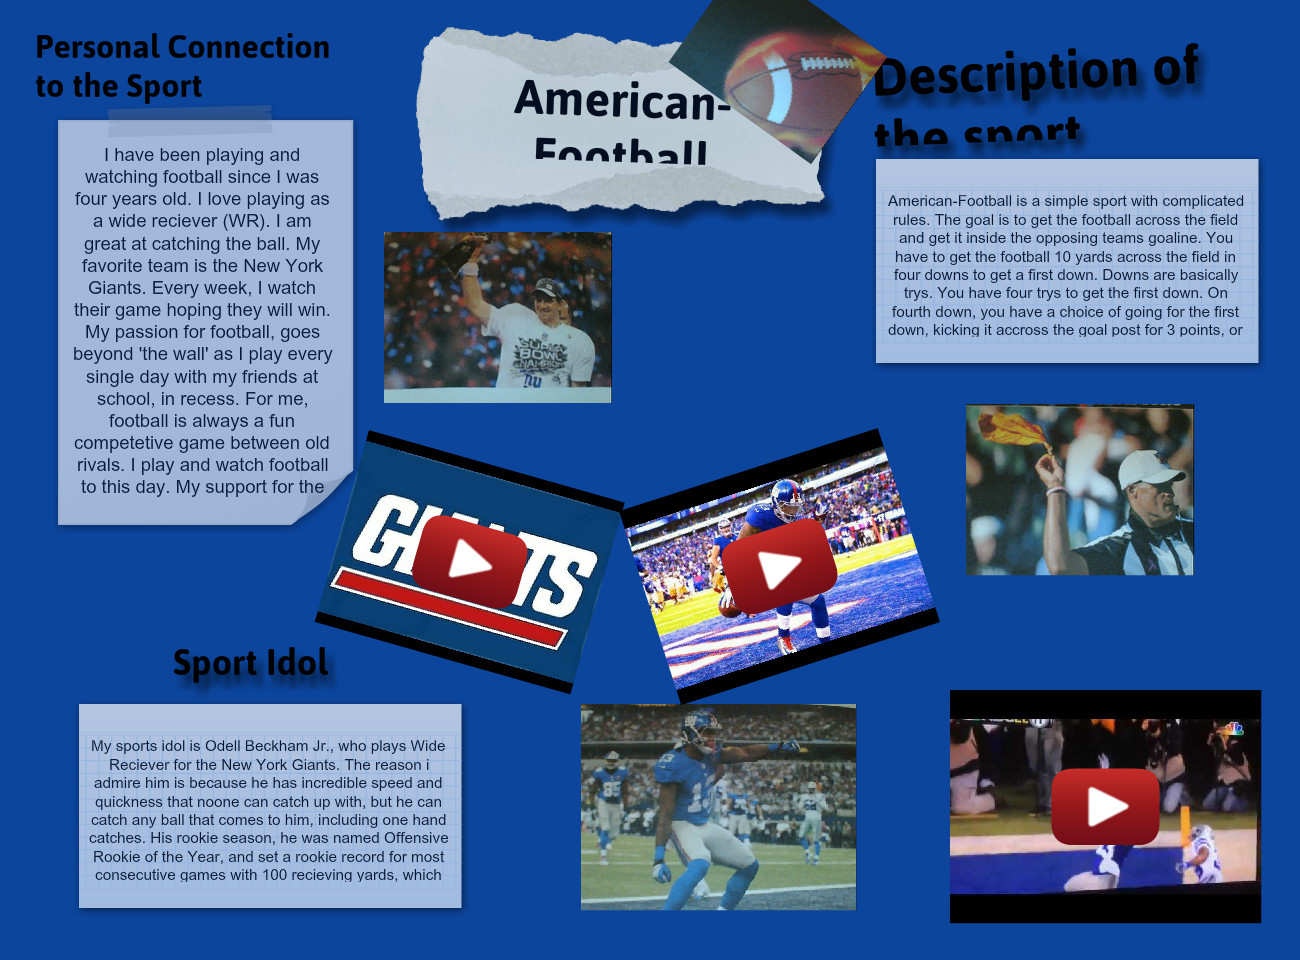 [2015] NASSERY HASHMATULLAH (624-ELA): Sport Reflection Assignment for Physical Education: American